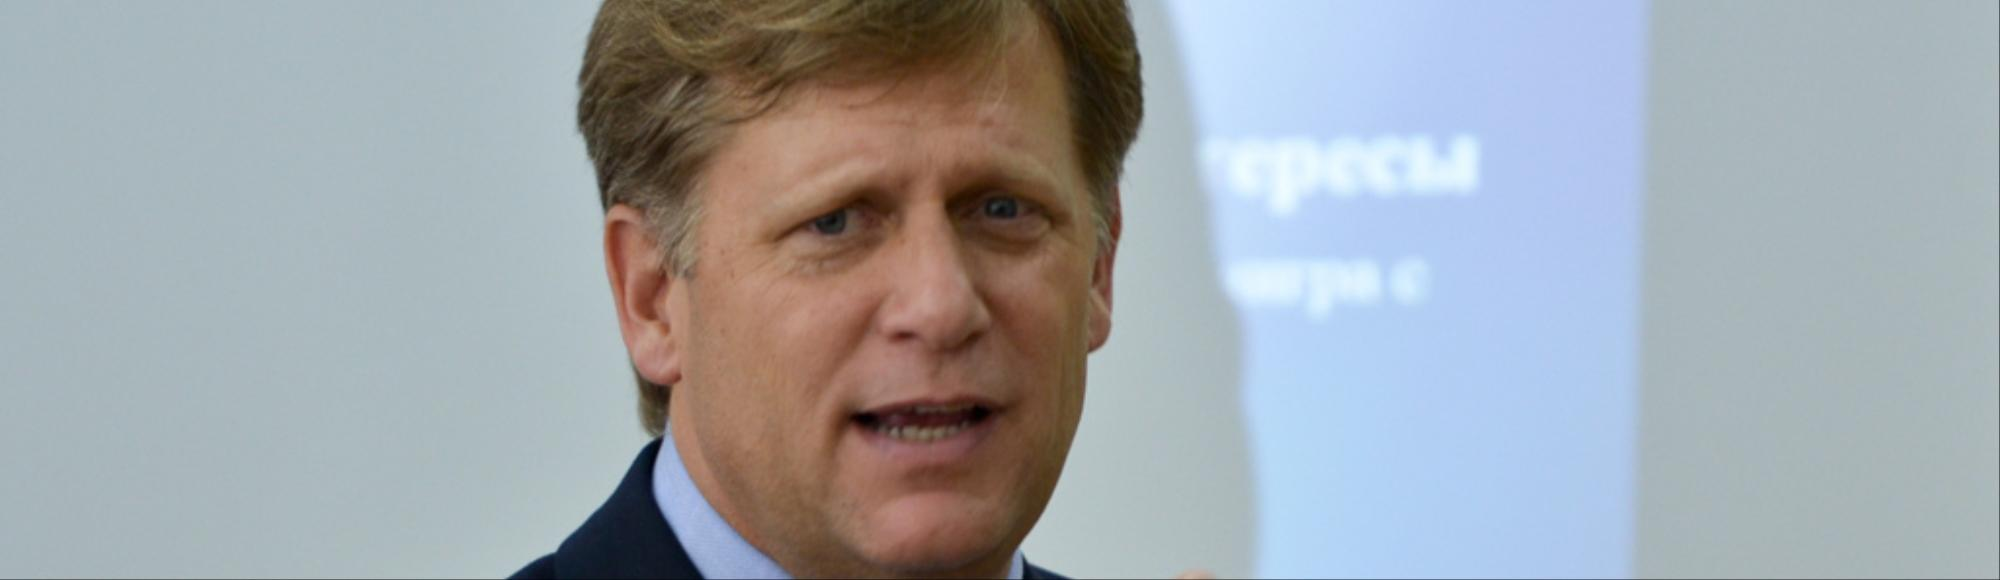 'There Has to Be More Pressure': Michael McFaul, America's Last Ambassador to Russia, Discusses Putin and Ukraine